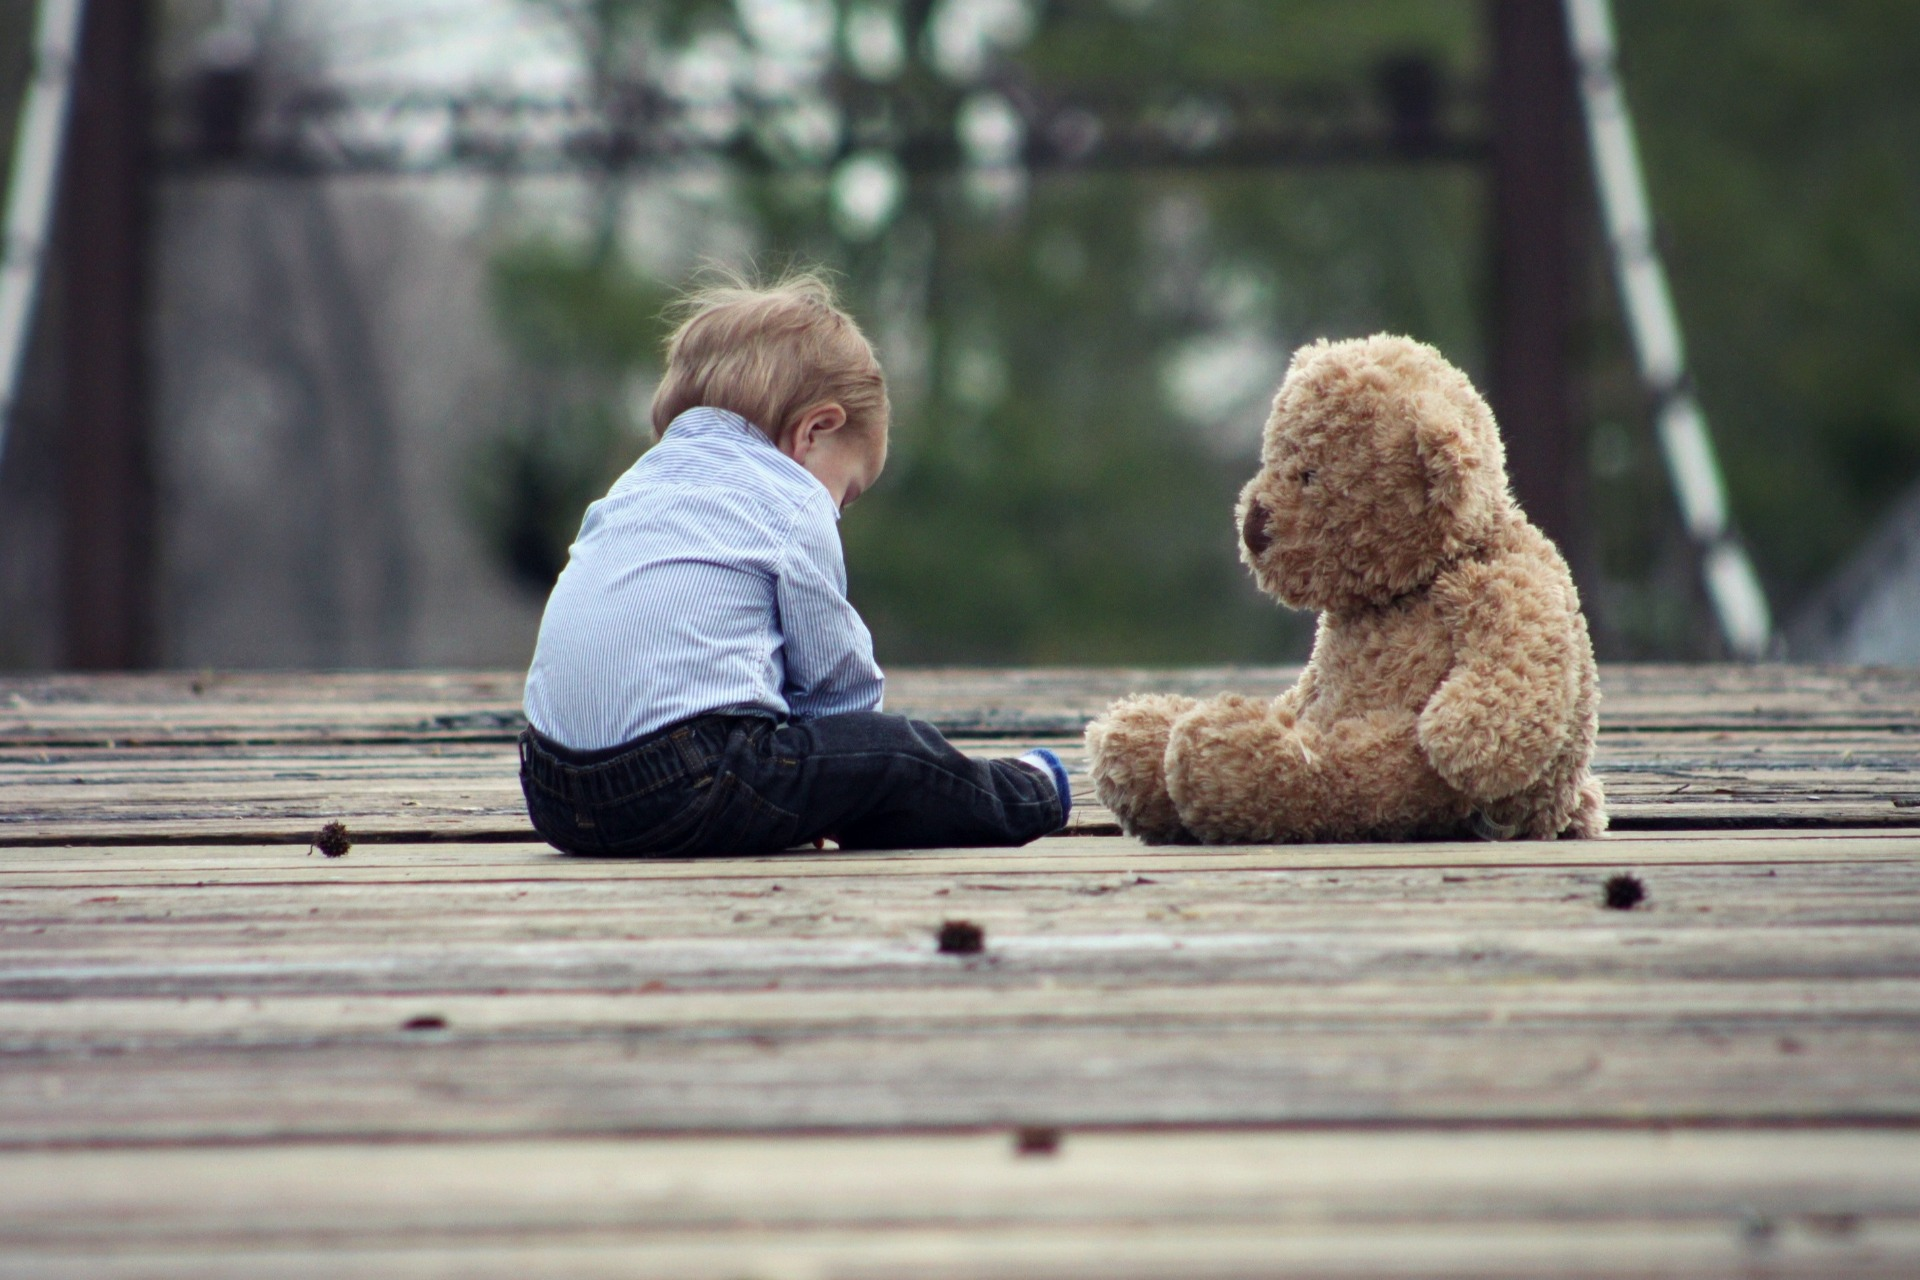 Child with a teddy